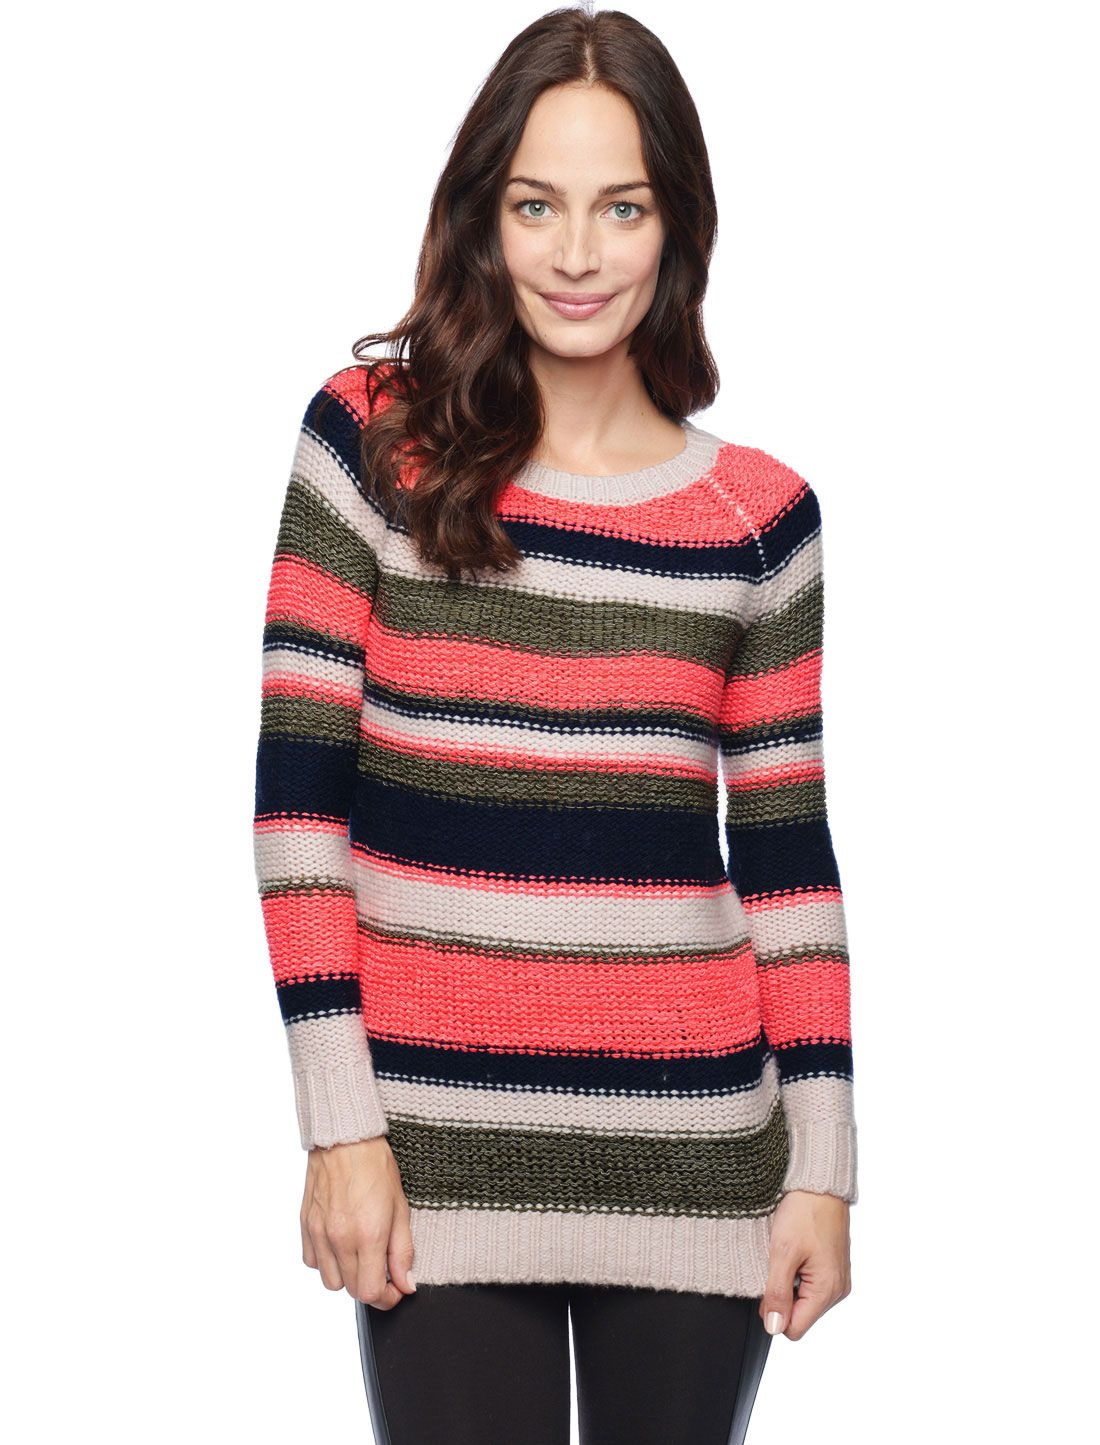 Splendid Official Store, Bleeker Stripe Tunic, neon coral,if only FL was cooler